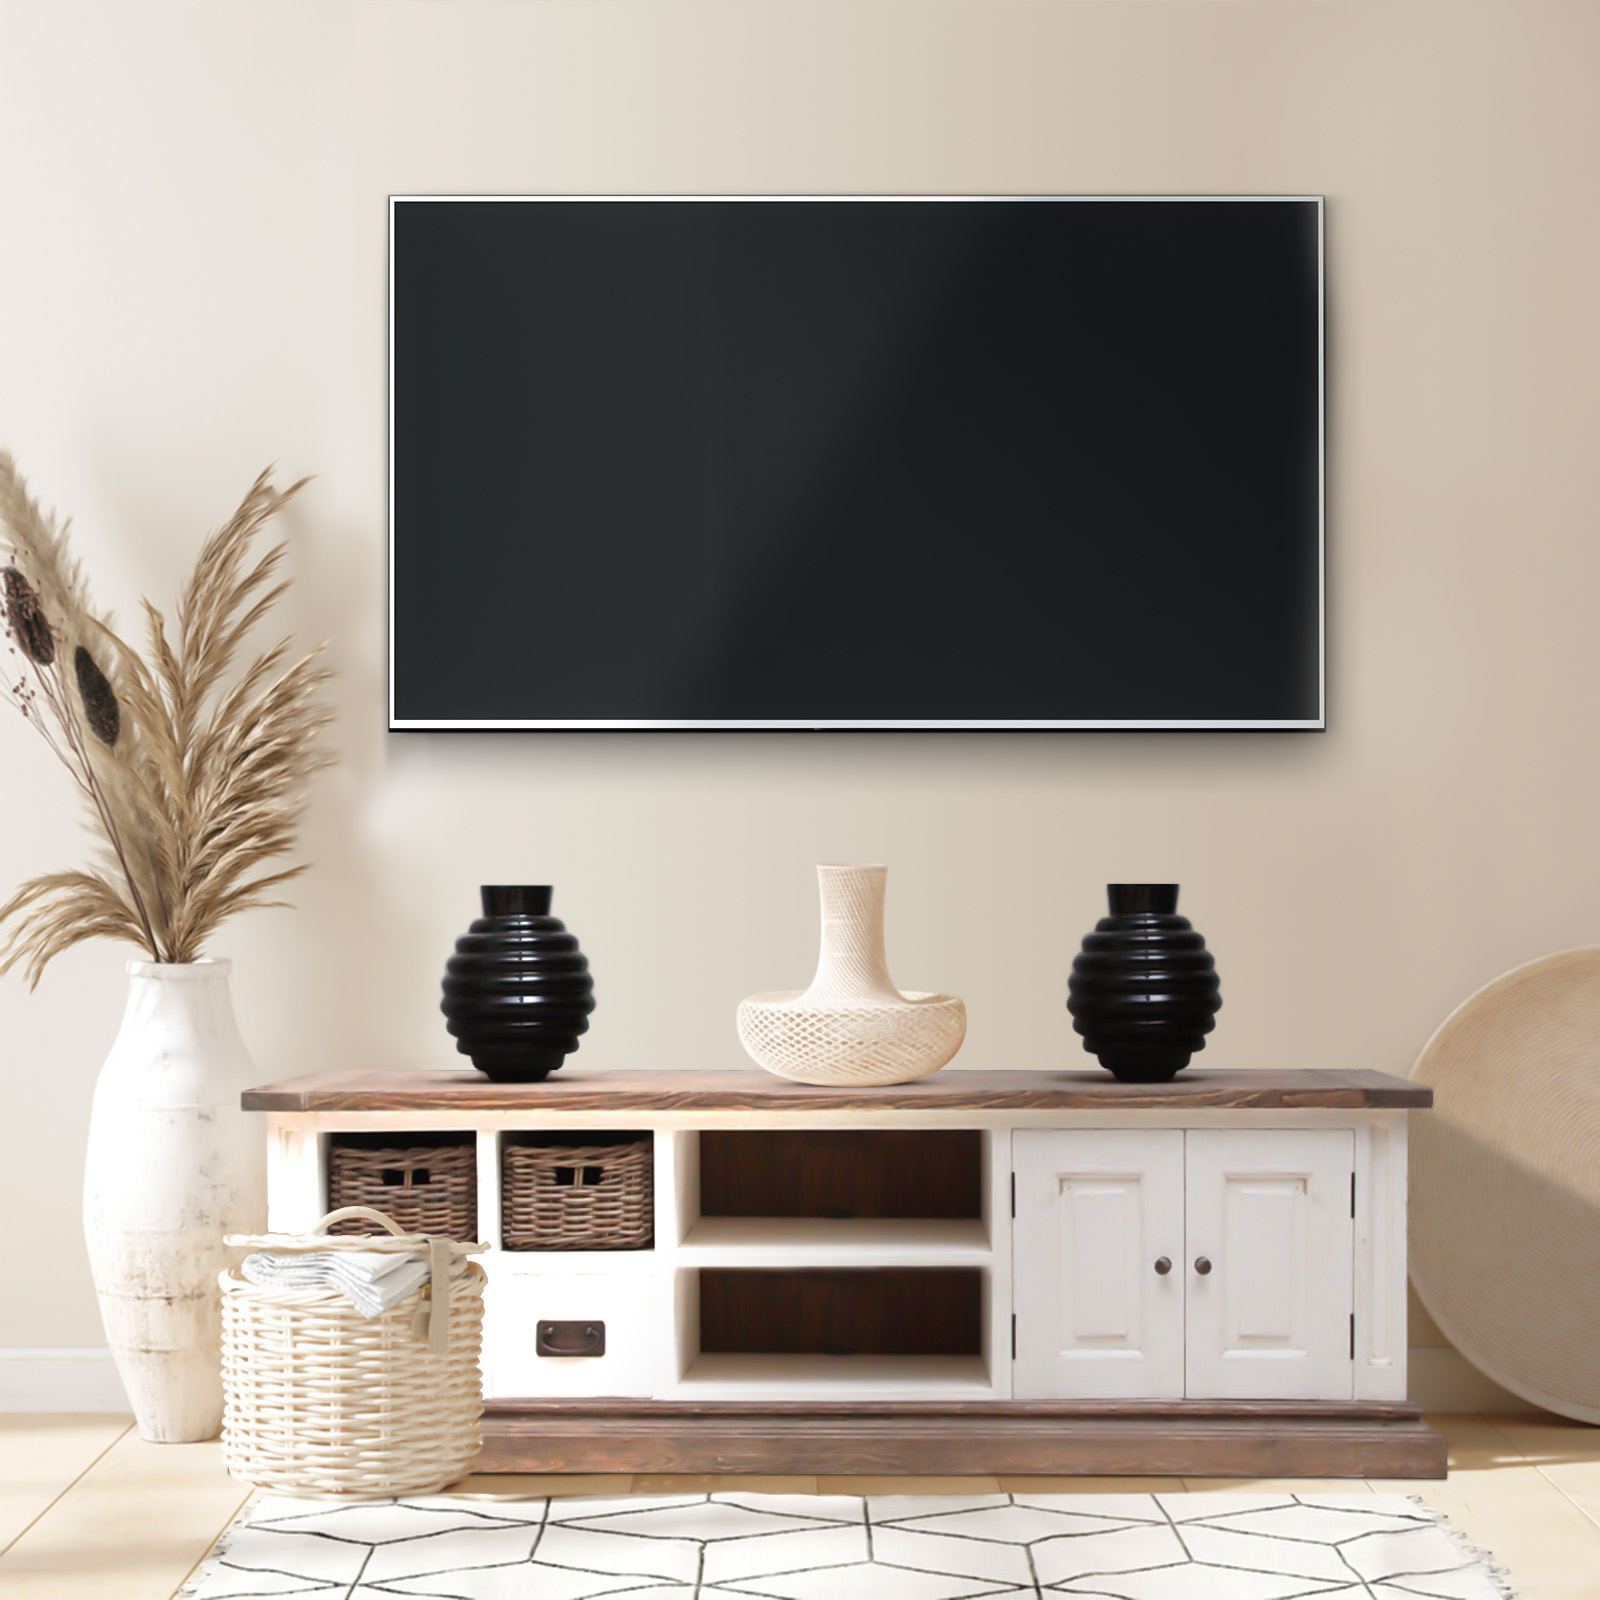 Meuble Tv Pin Massif Blanc - Meuble Tv En Pin Massif Thani Khahomedesign[mjhdah]https://i.pinimg.com/originals/5e/32/ca/5e32ca09f1c82f6a9695b13fa2f4ce2d.jpg